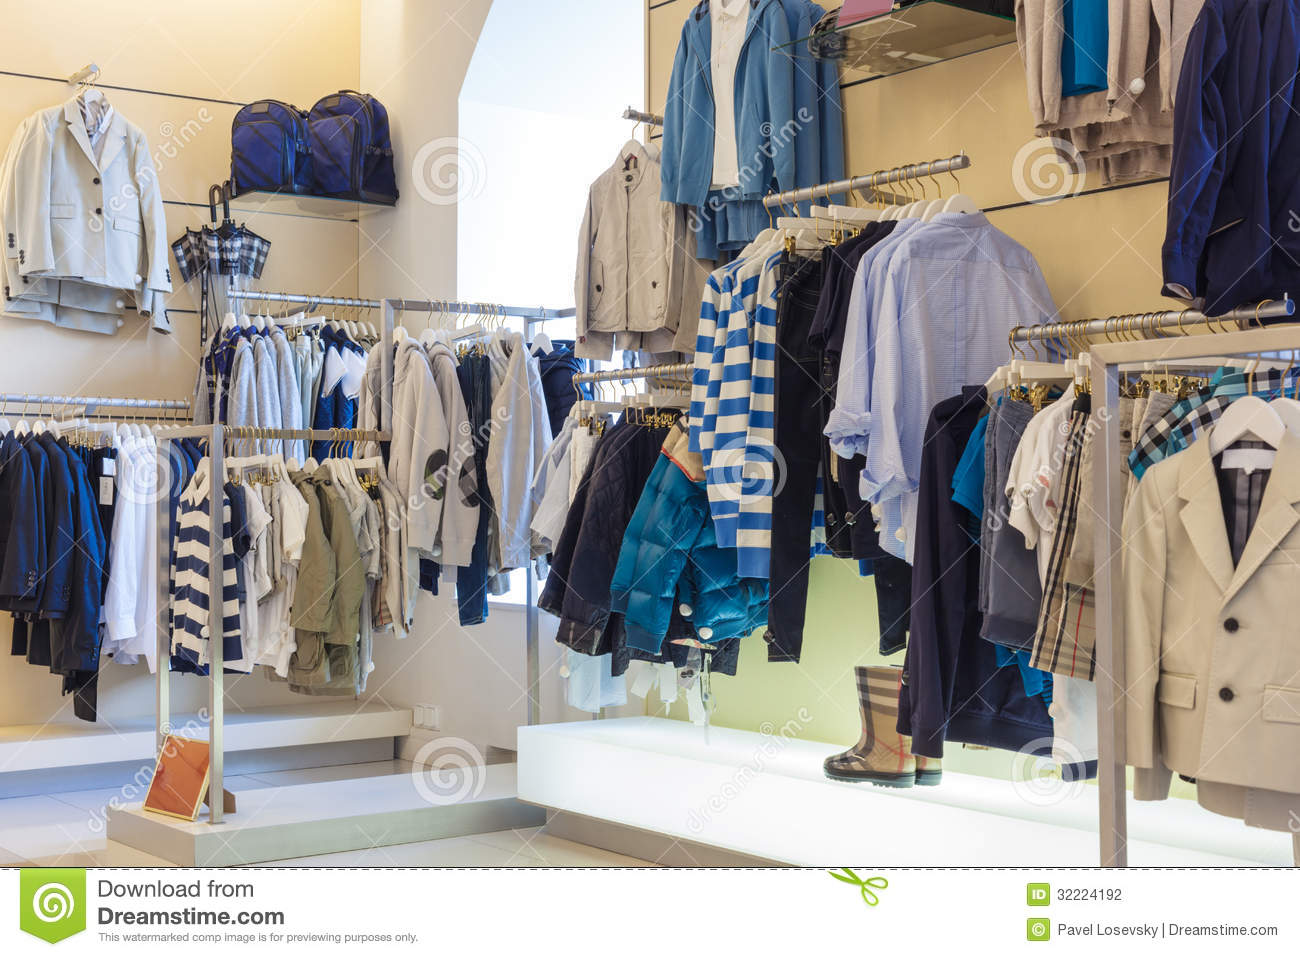 Little boys clothing stores Women clothing stores